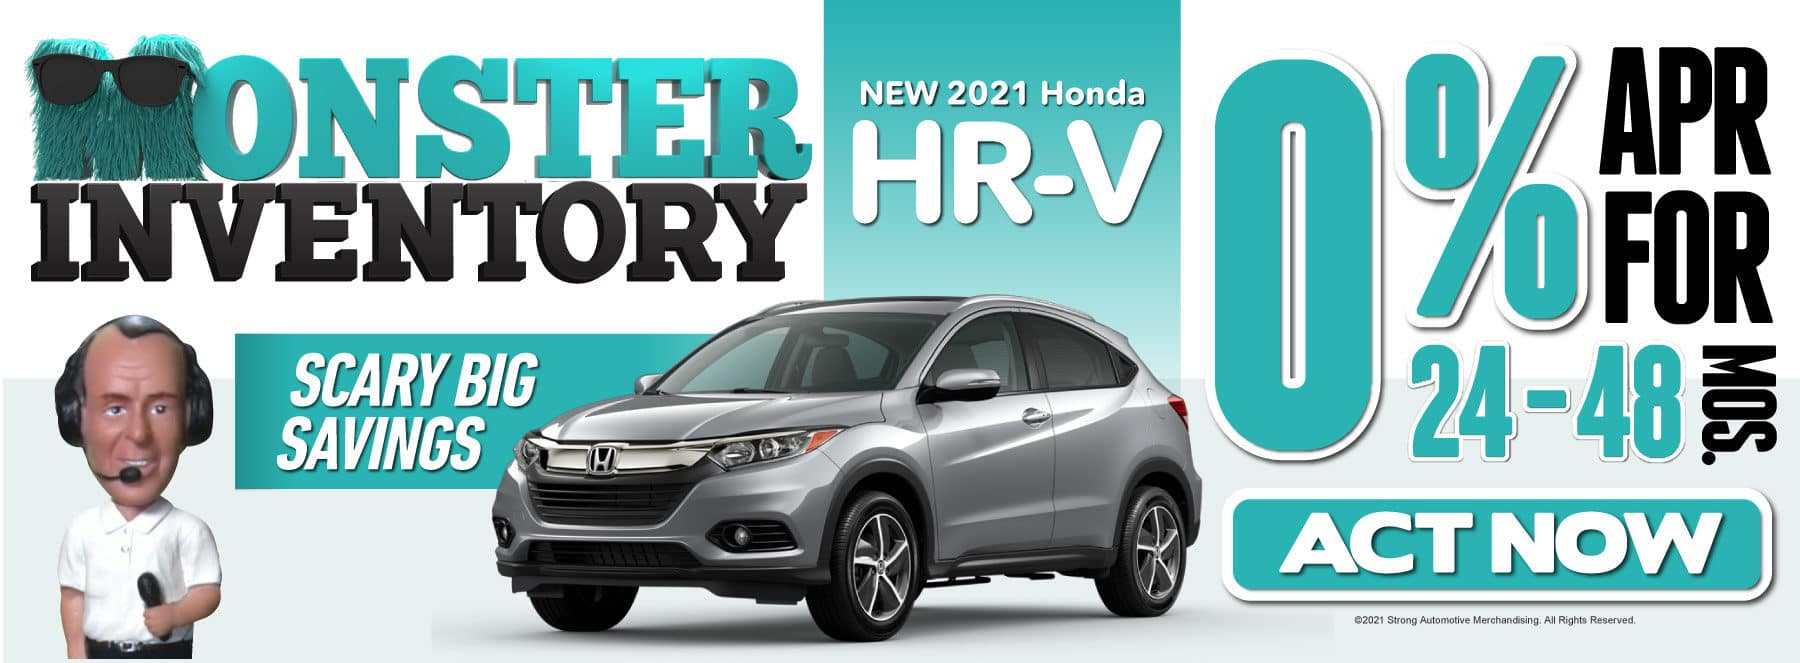 New 2021 Honda HR-V- 0% APR for 24-48 Months — ACT NOW